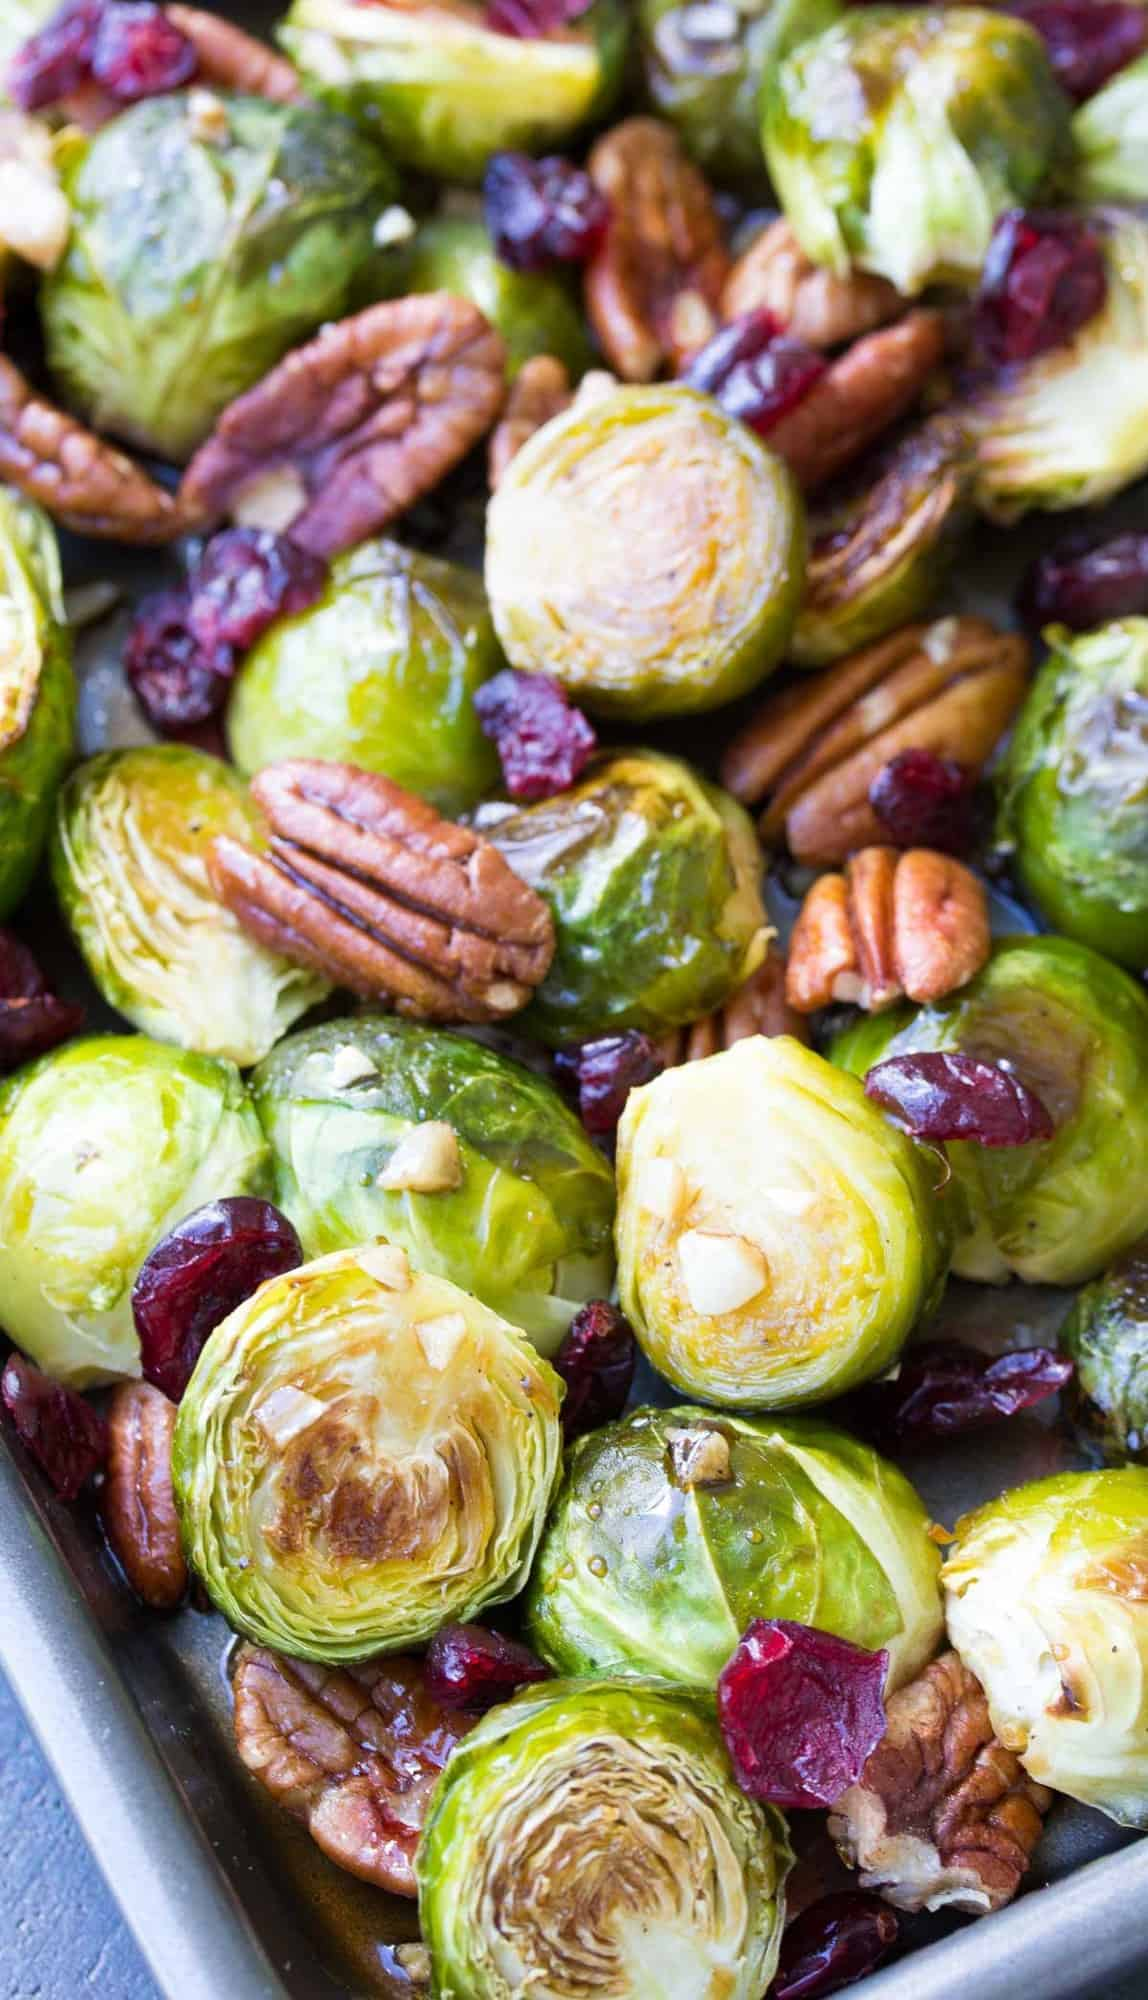 A baking pan full of maple balsamic roasted brussels sprouts.